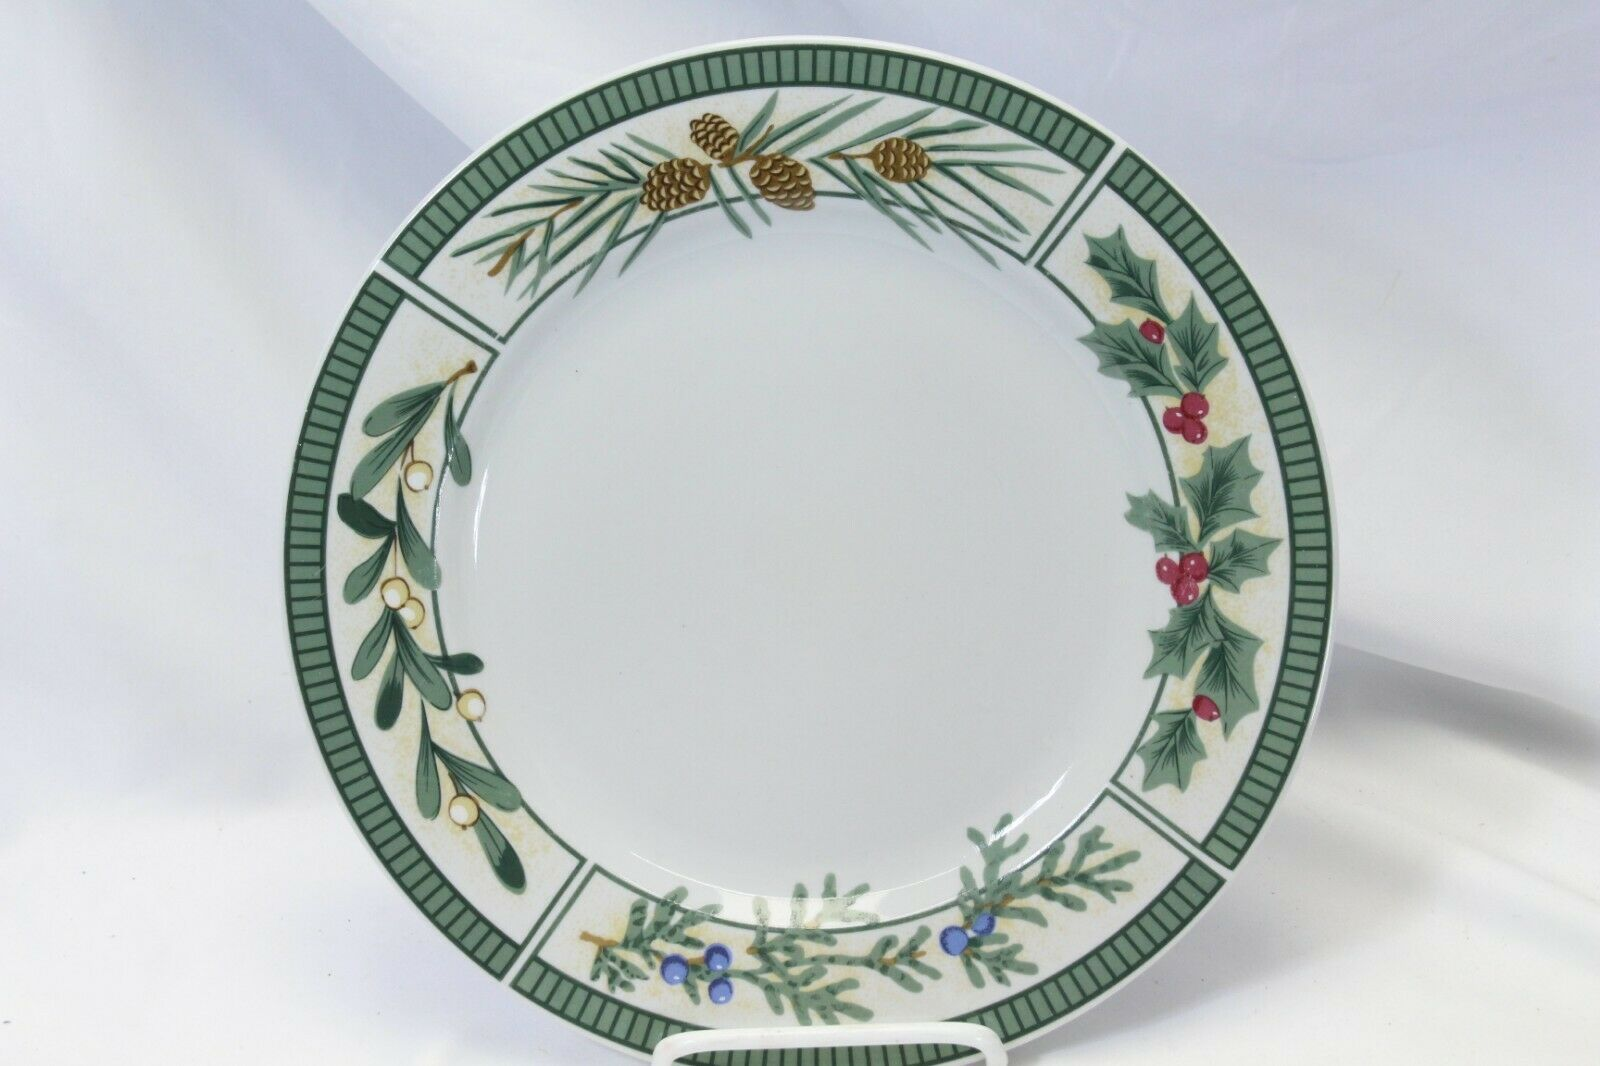 Fairfield Wintergreen Plates and Bowls Lot of 15  Christmas image 6